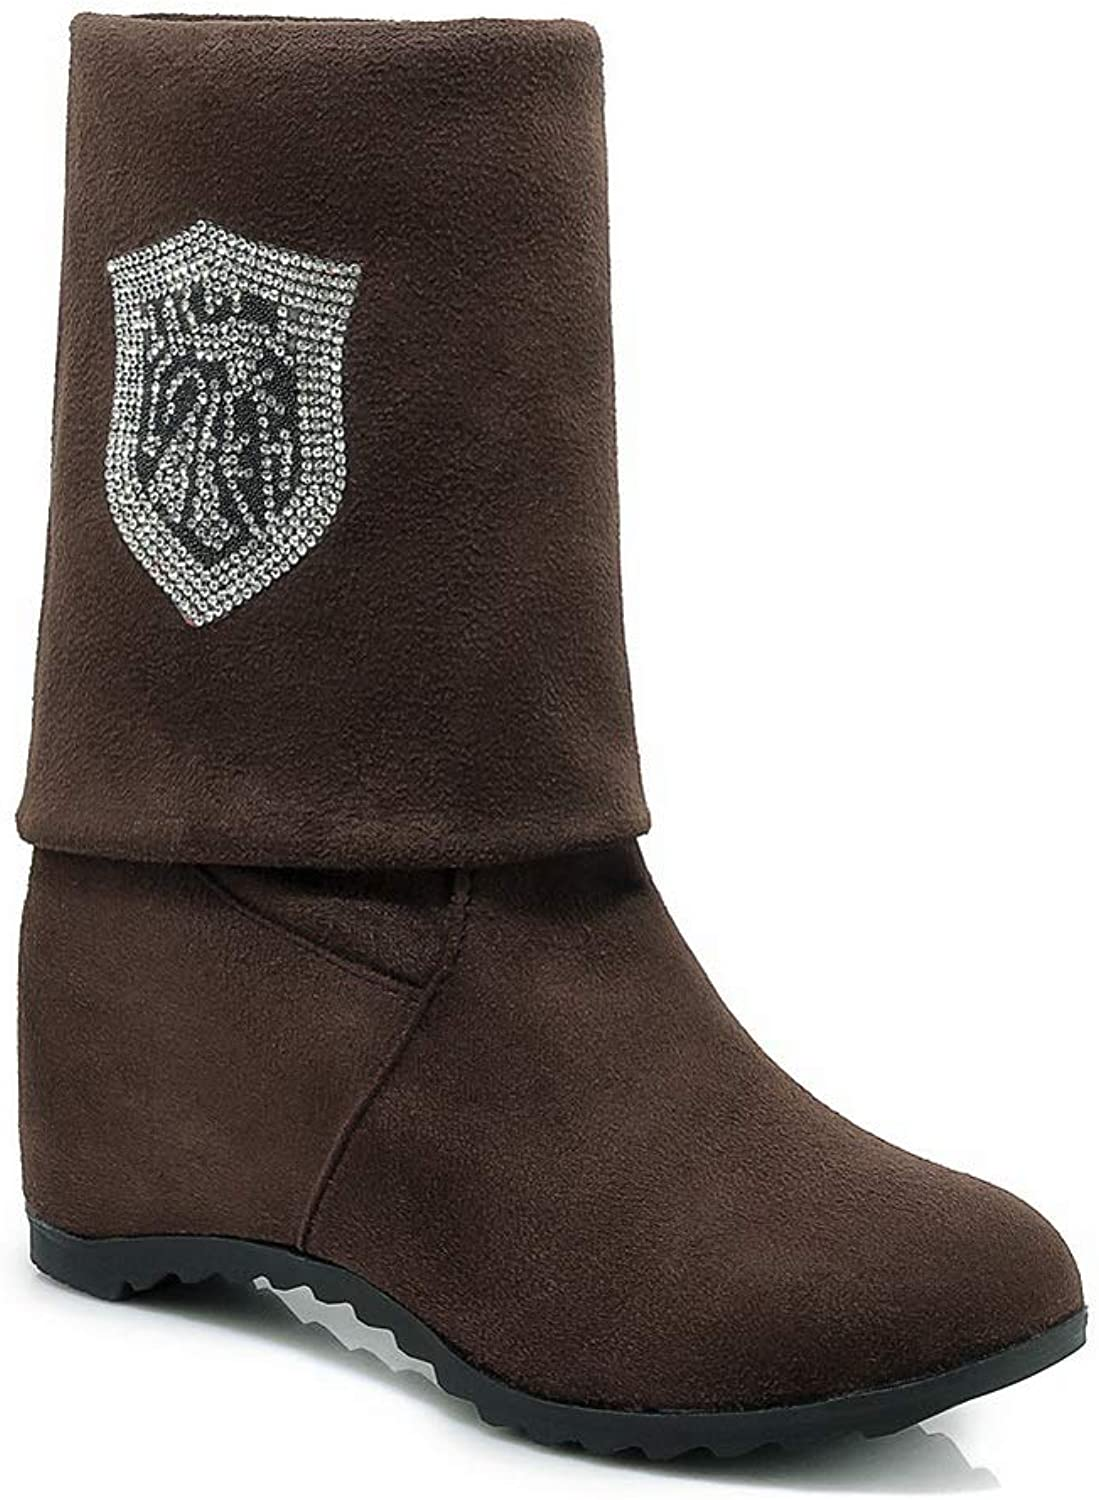 AdeeSu Womens Beaded Solid Casual Urethane Boots SXC02981